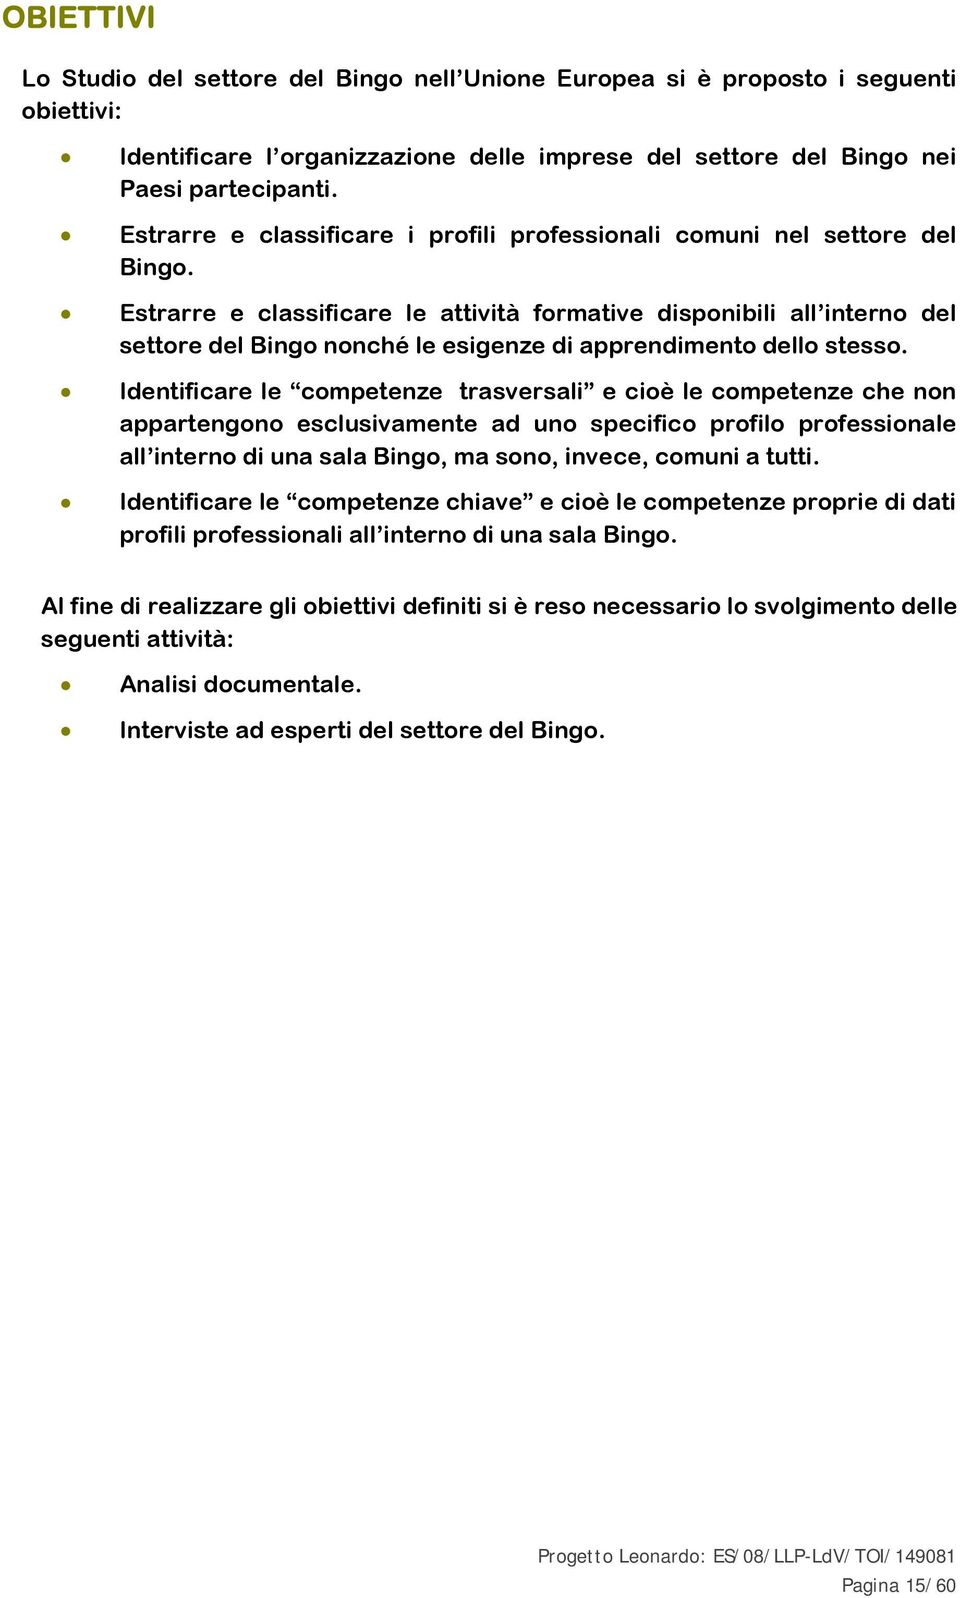 Estrarre e classificare le attività frmative dispnibili all intern del settre del Bing nnché le esigenze di apprendiment dell stess.